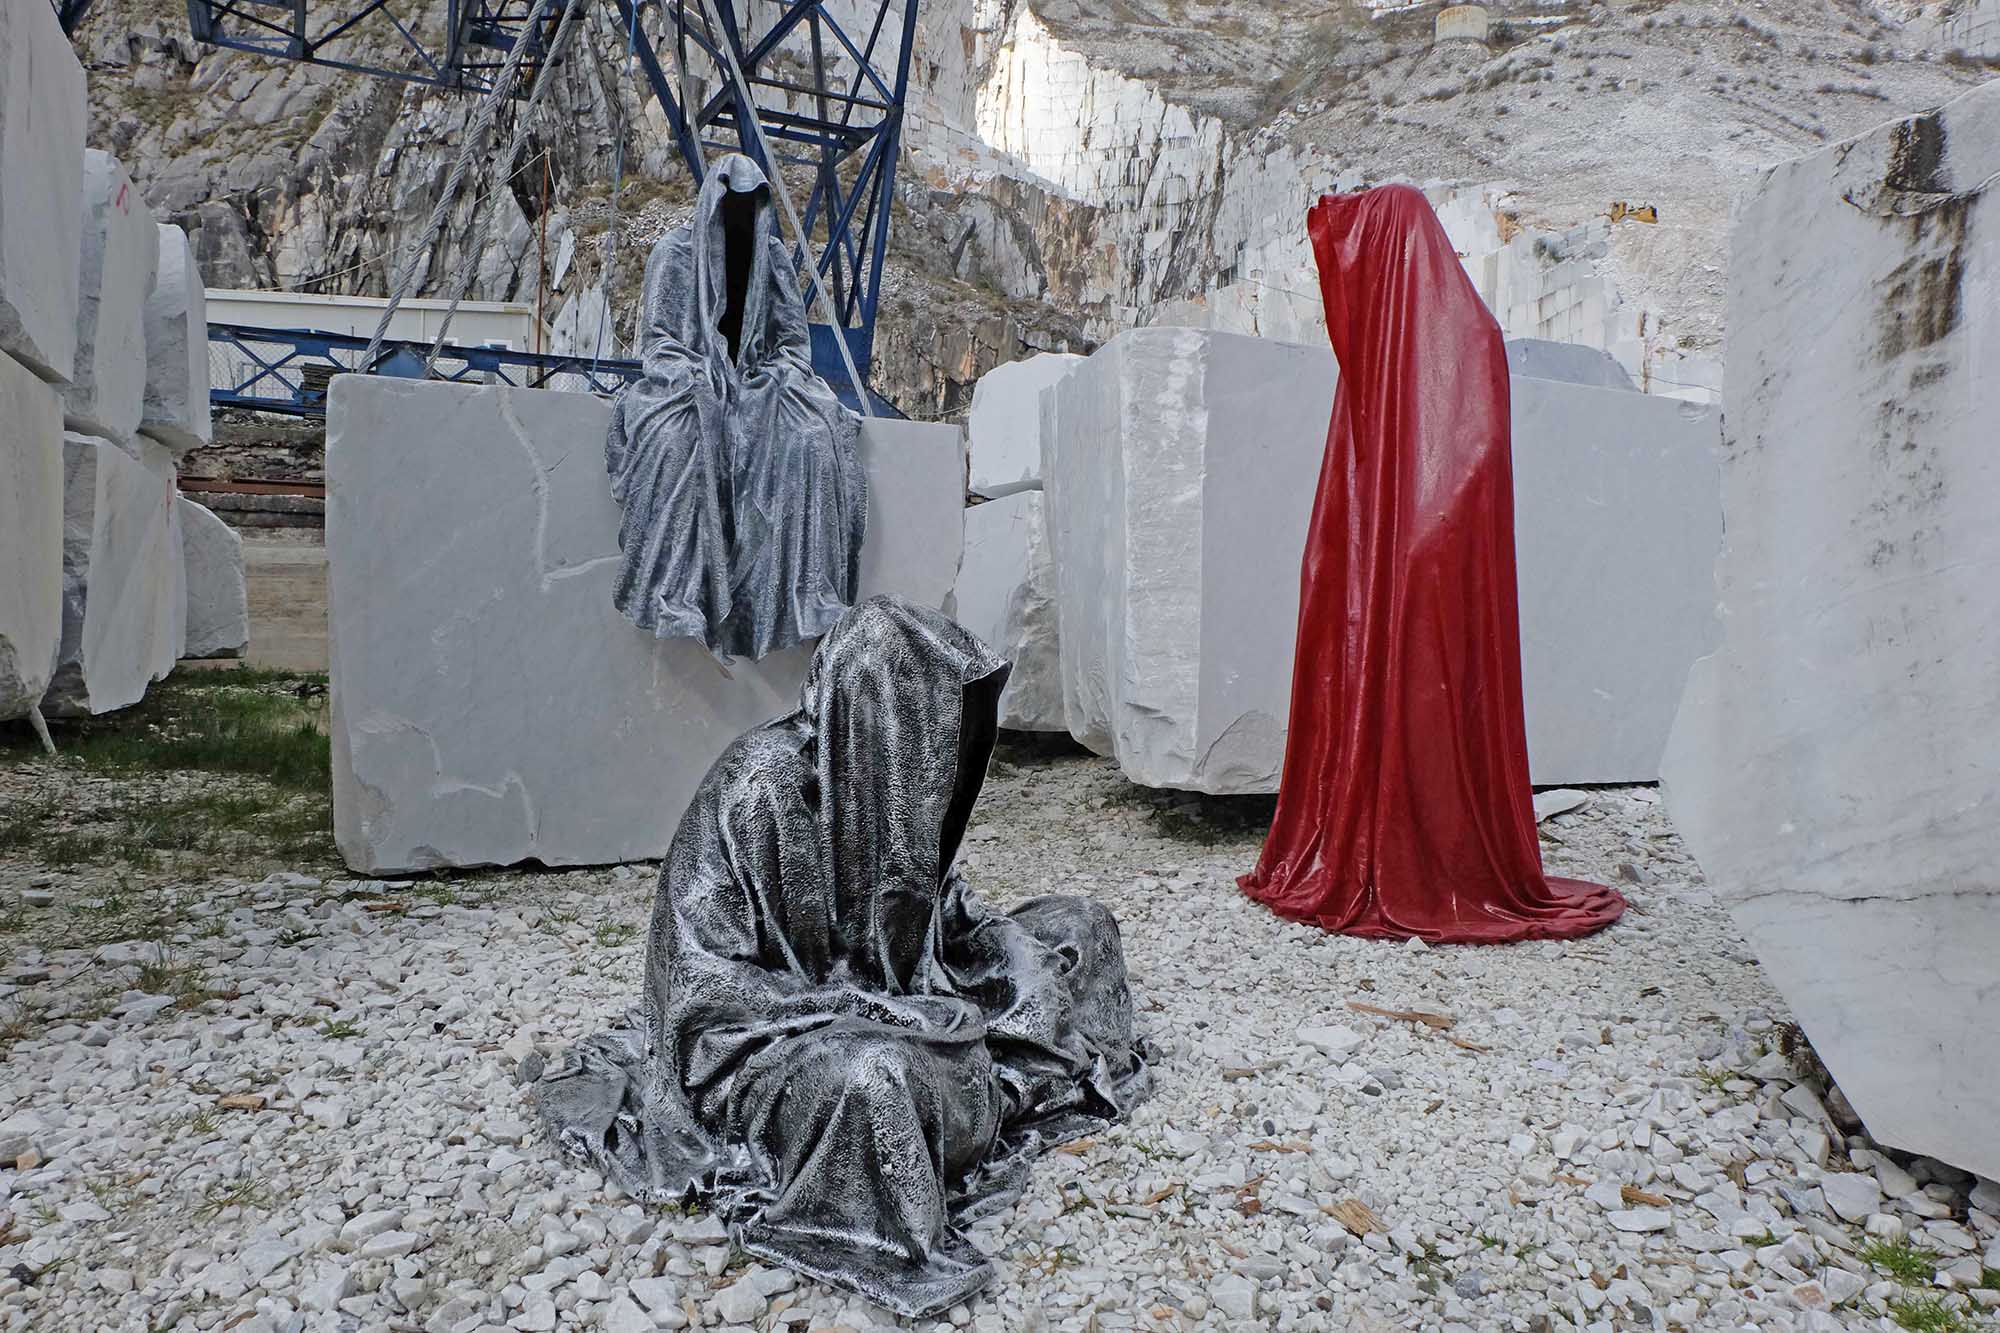 guardians of time manfred kili kielnhofer modern sculpture contemporary fine art design arts statue faceless religion stone marble carrara 1011